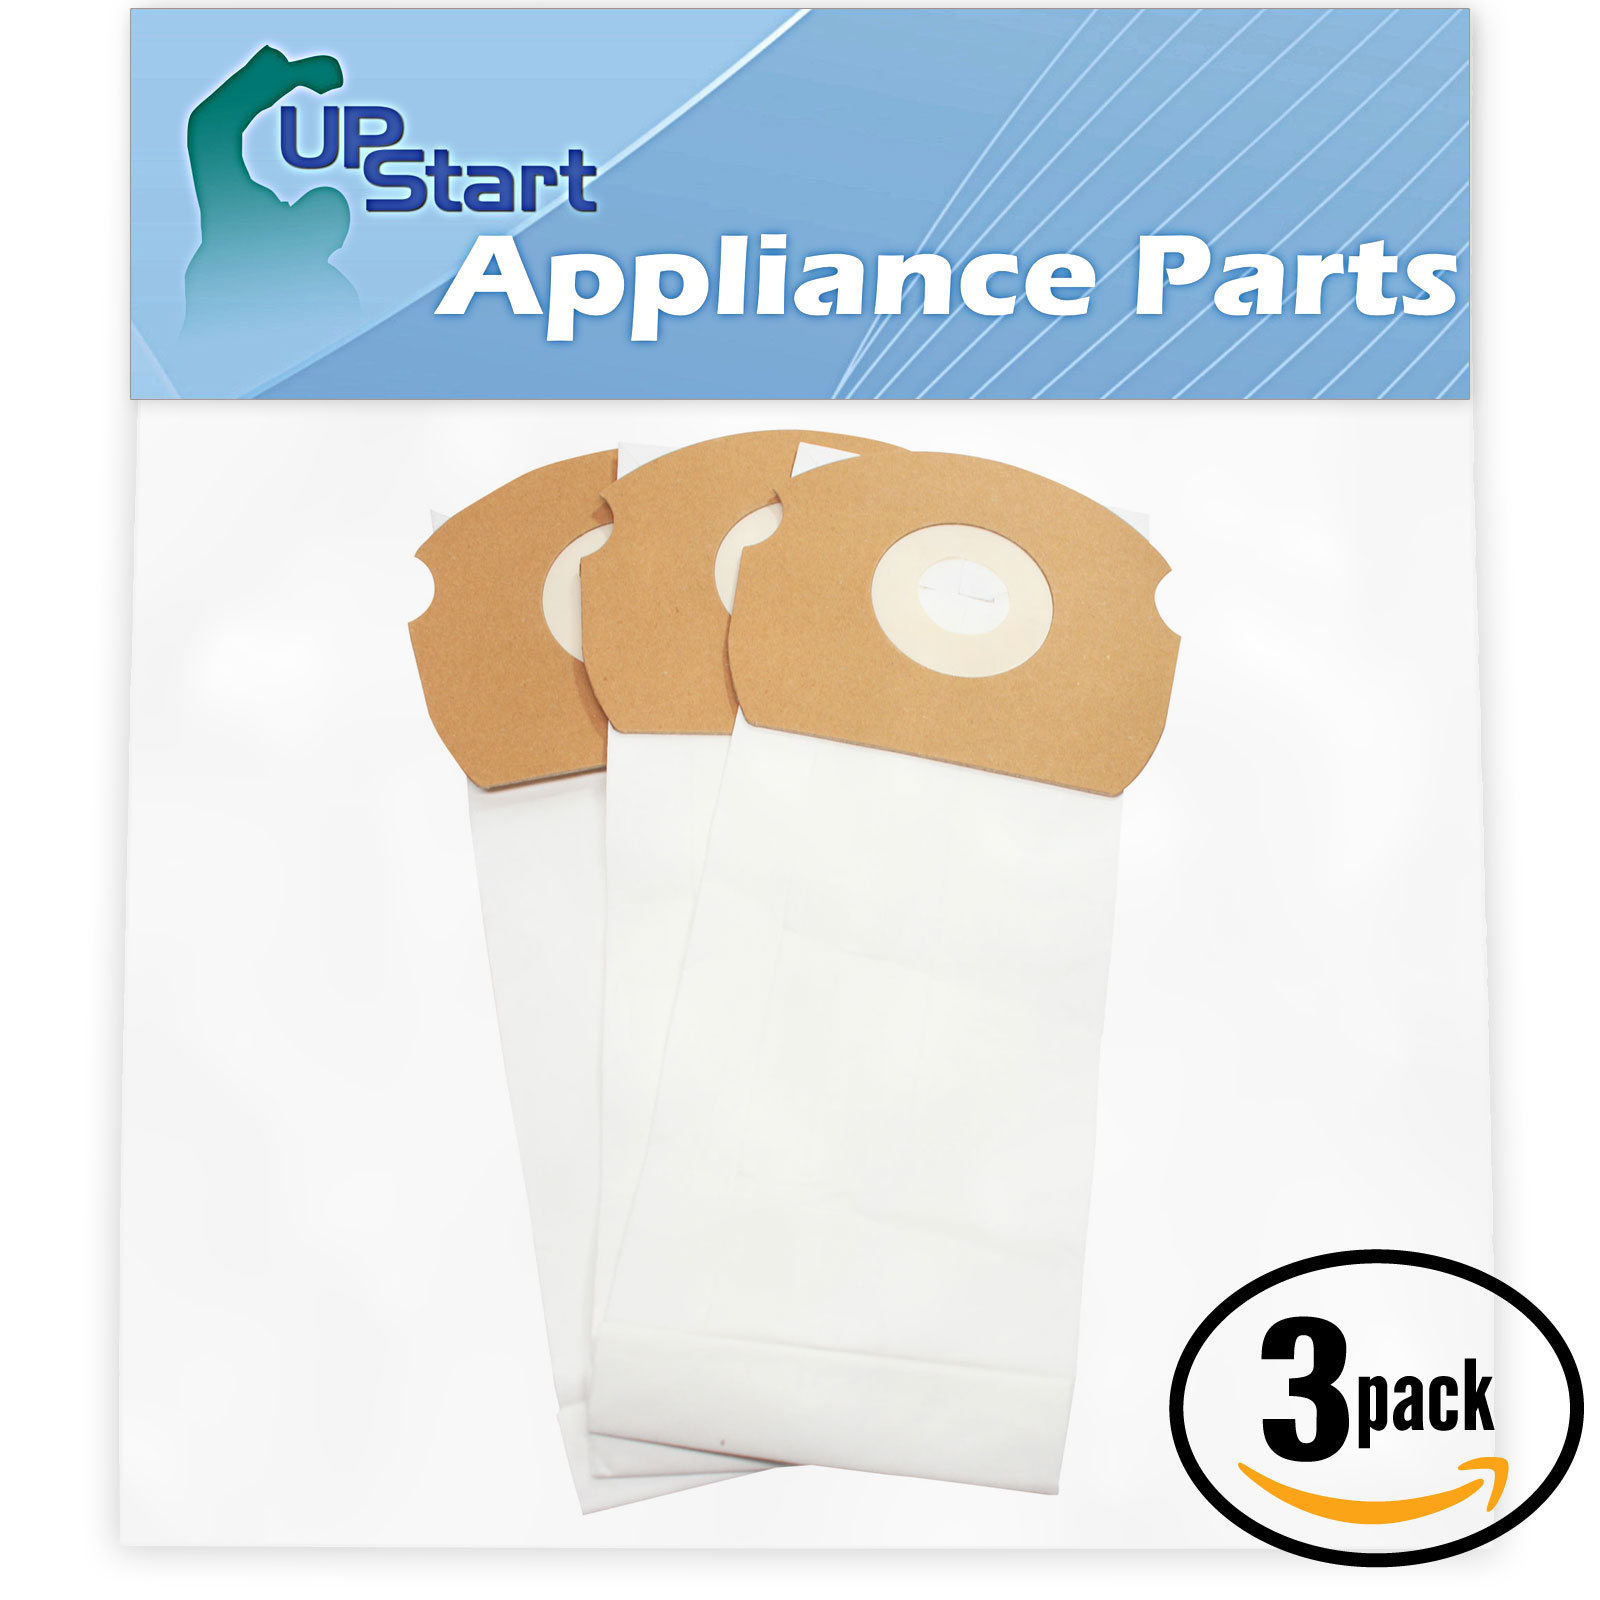 9 Replacement Eureka AirSpeed ASM1065 Vacuum Bags  - Compatible Eureka 68155, AS Vacuum Bags (3-Pack - 3 Vacuum Bags per Pack)